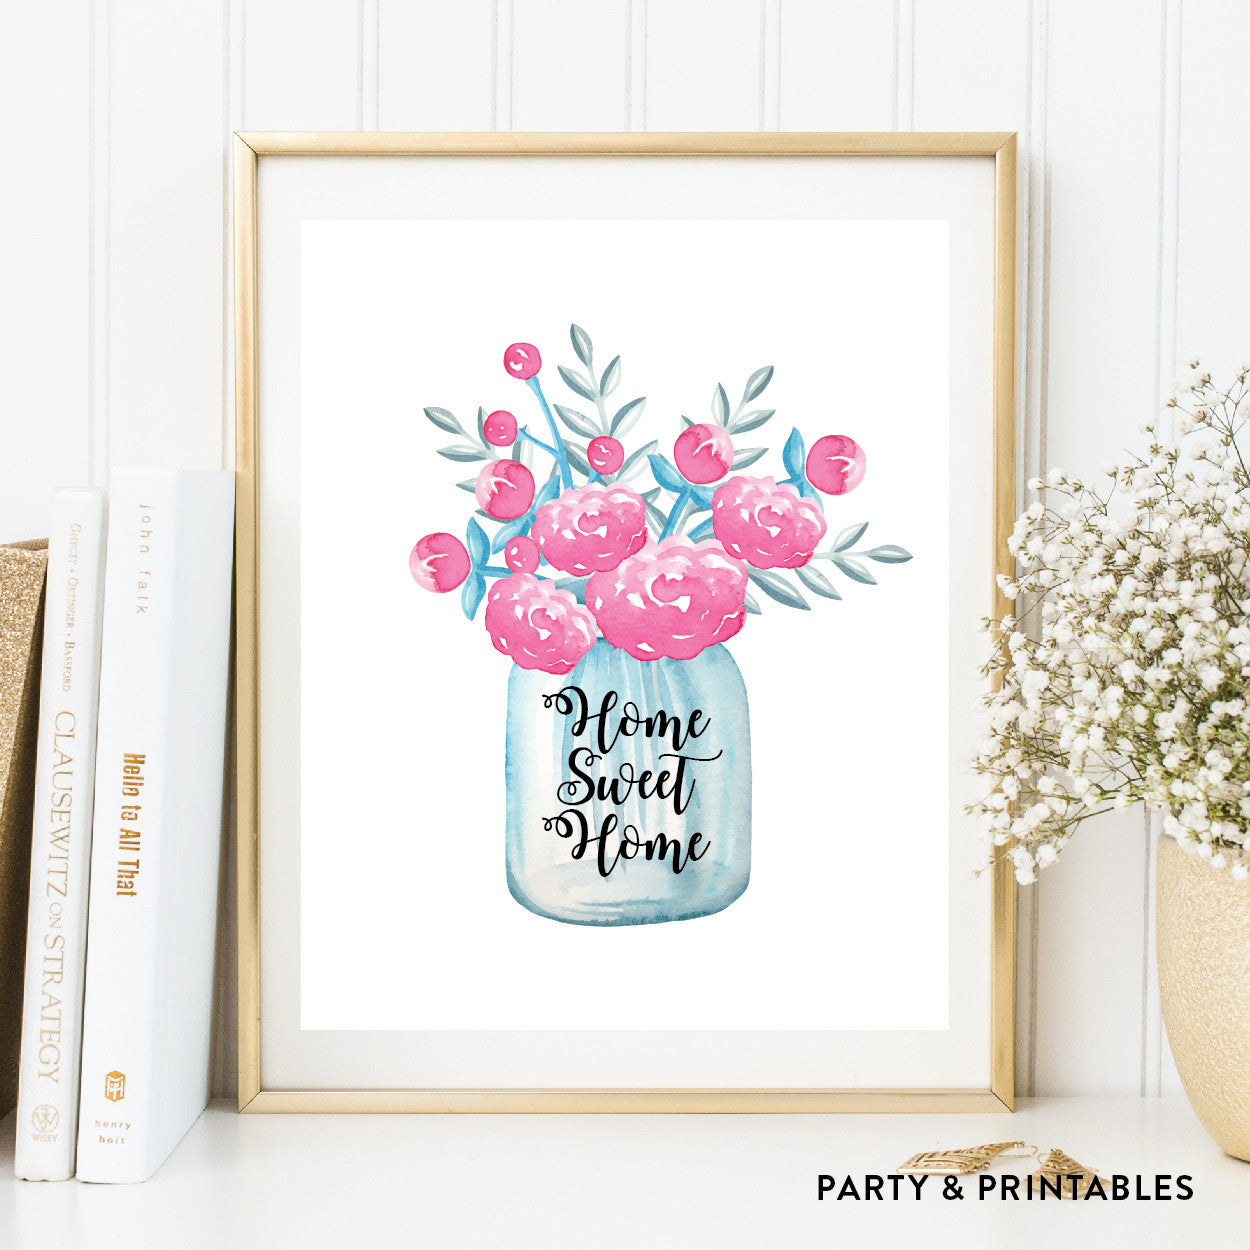 Home Sweet Home Wall Art / Instant Download (WA.47), wall art - Party and Printables